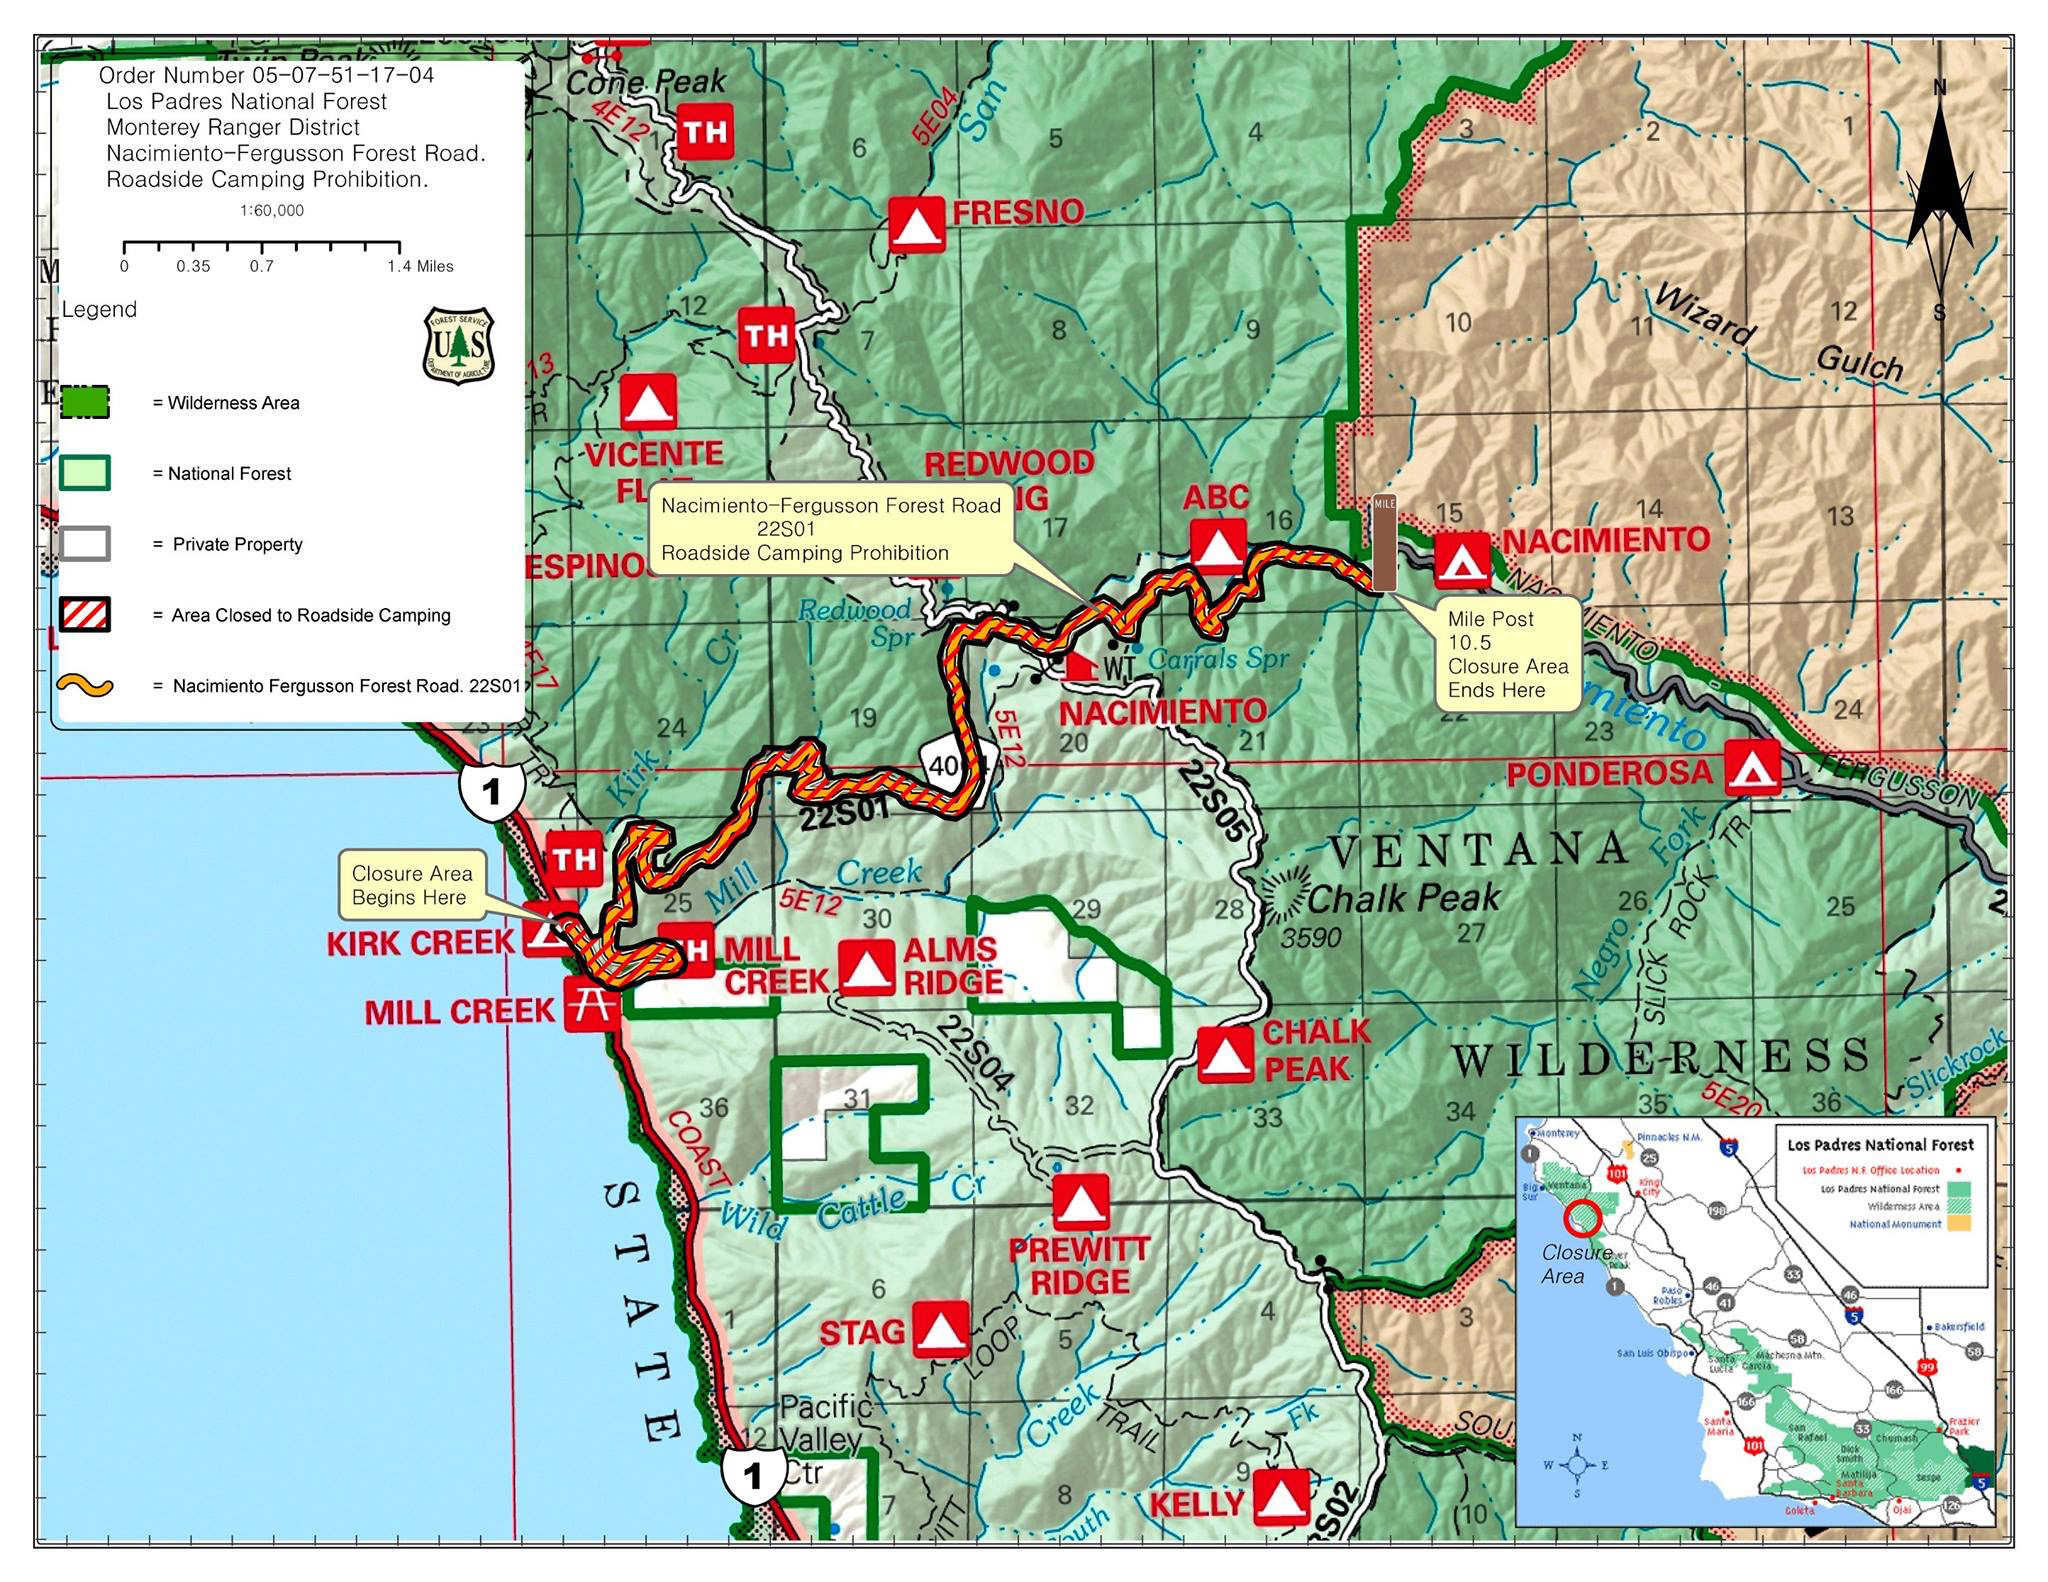 Highway 1 Conditions In Big Sur, California - Route 1 California Map